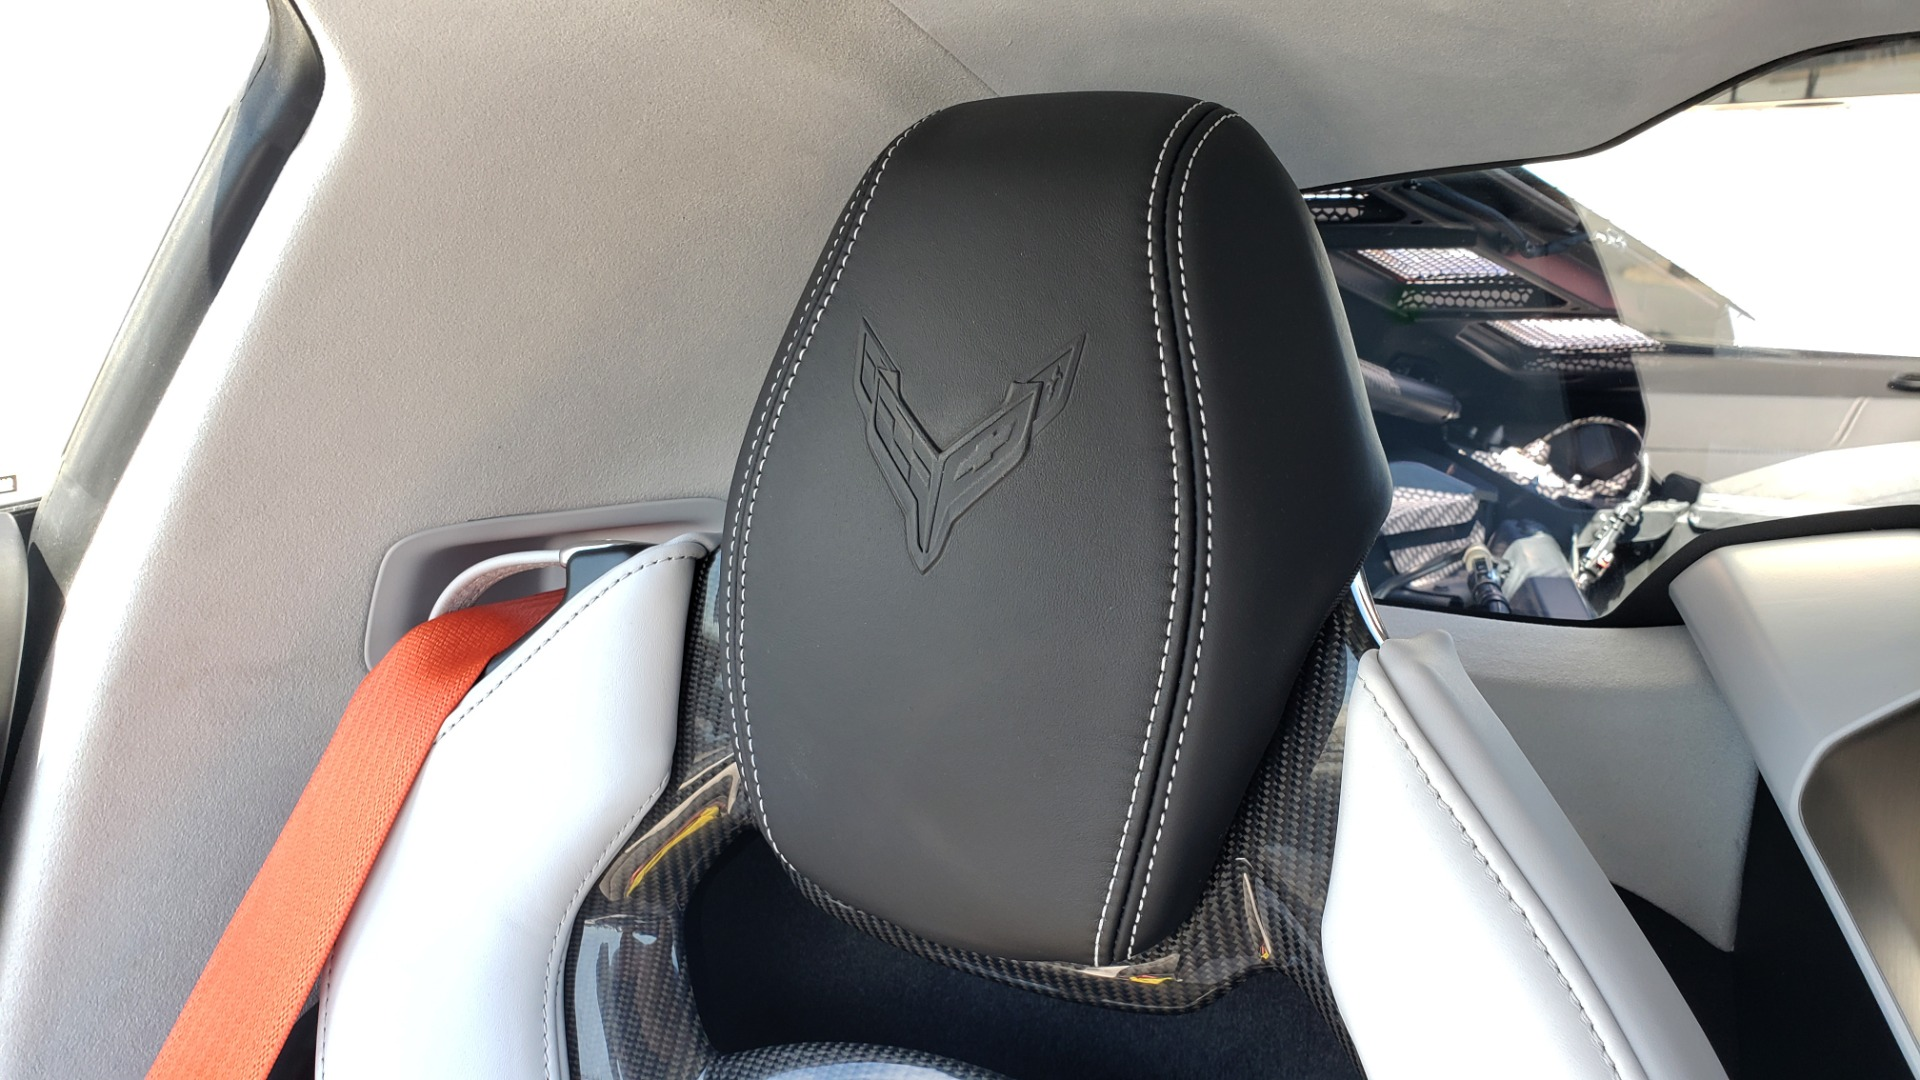 Used 2020 Chevrolet CORVETTE C8 STINGRAY 3LT COUPE / NAV / BOSE / CAMERA / LIKE NEW for sale Sold at Formula Imports in Charlotte NC 28227 66